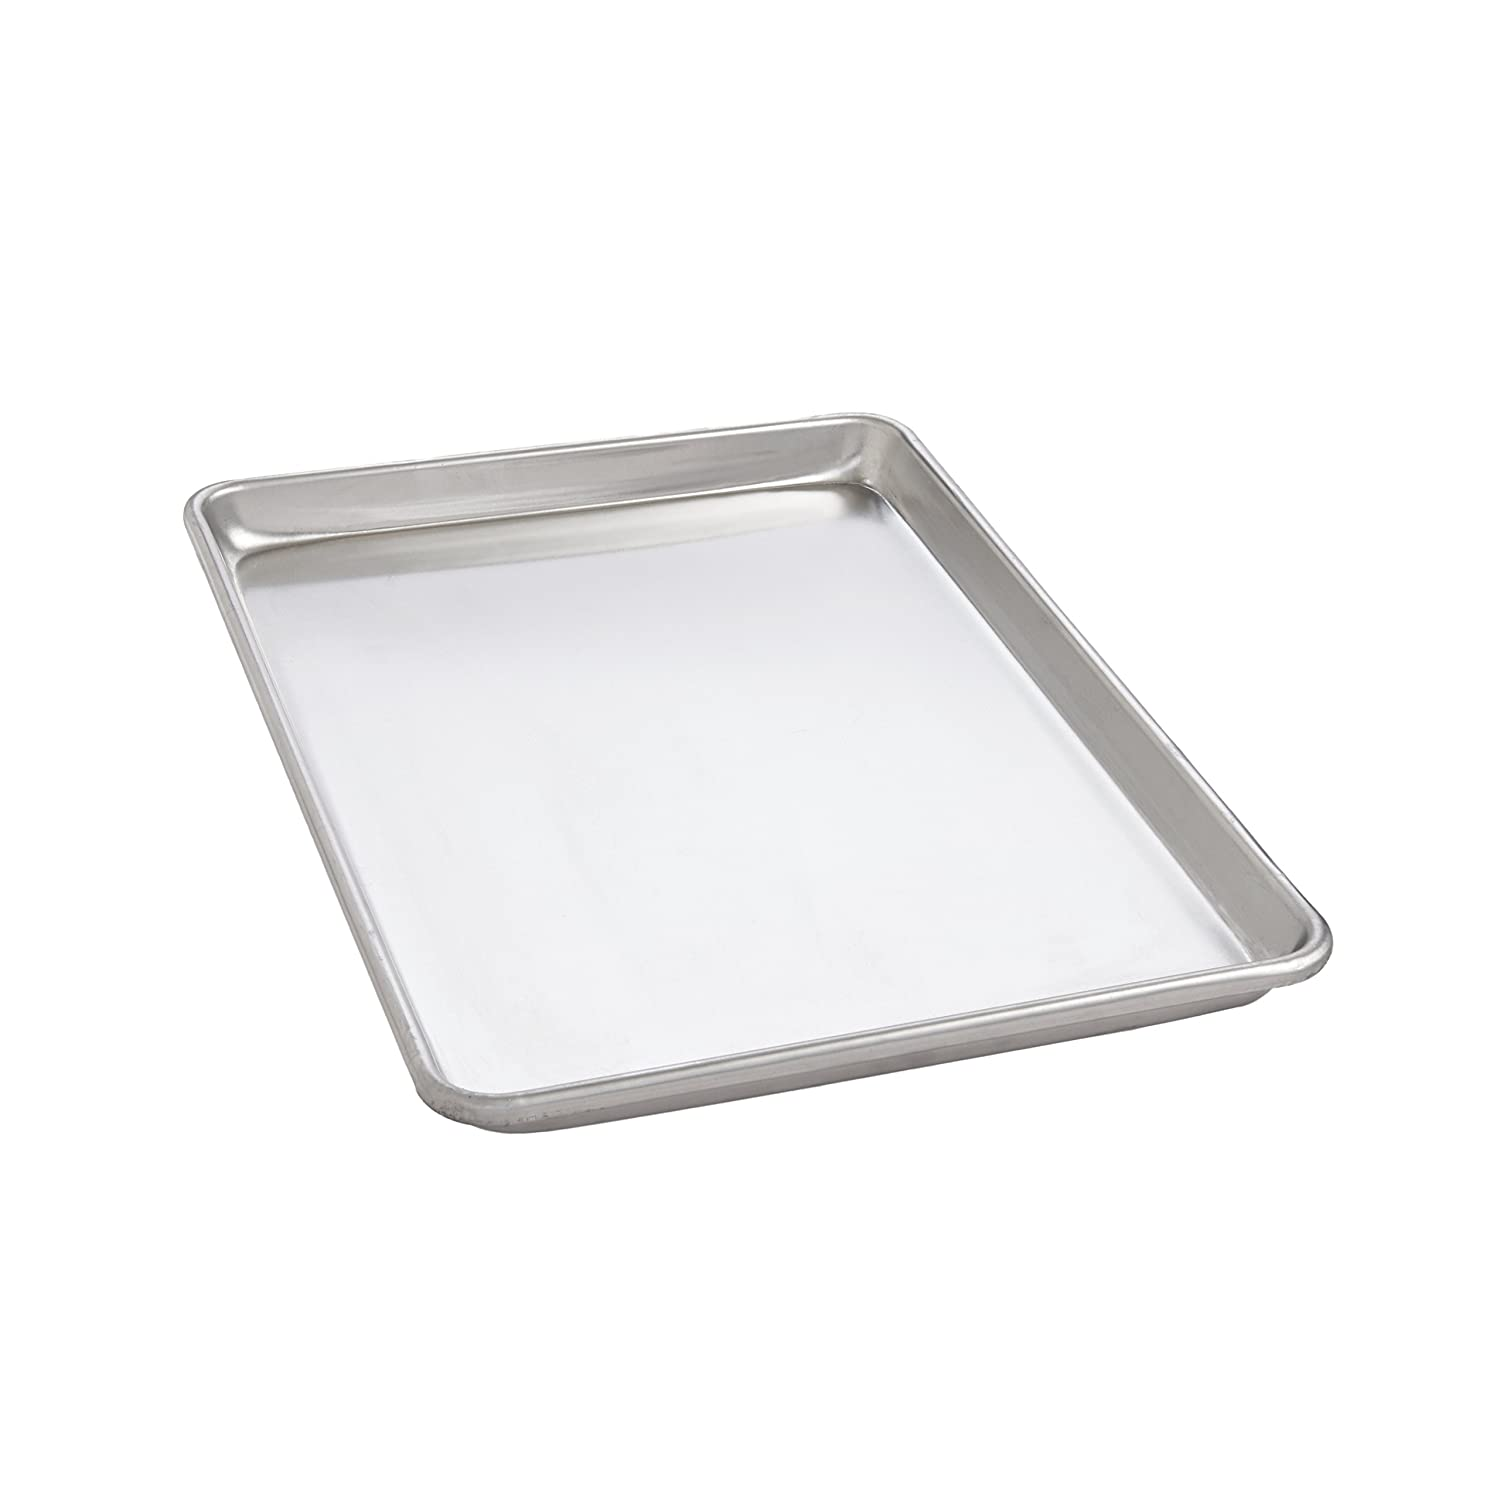 Mrs. Anderson's Baking Heavyweight Quarter Sheet Baking Pan, Commercial Grade 19-Gauge Aluminum, 9.5-Inches x 13-Inches Mrs. Anderson's 31814